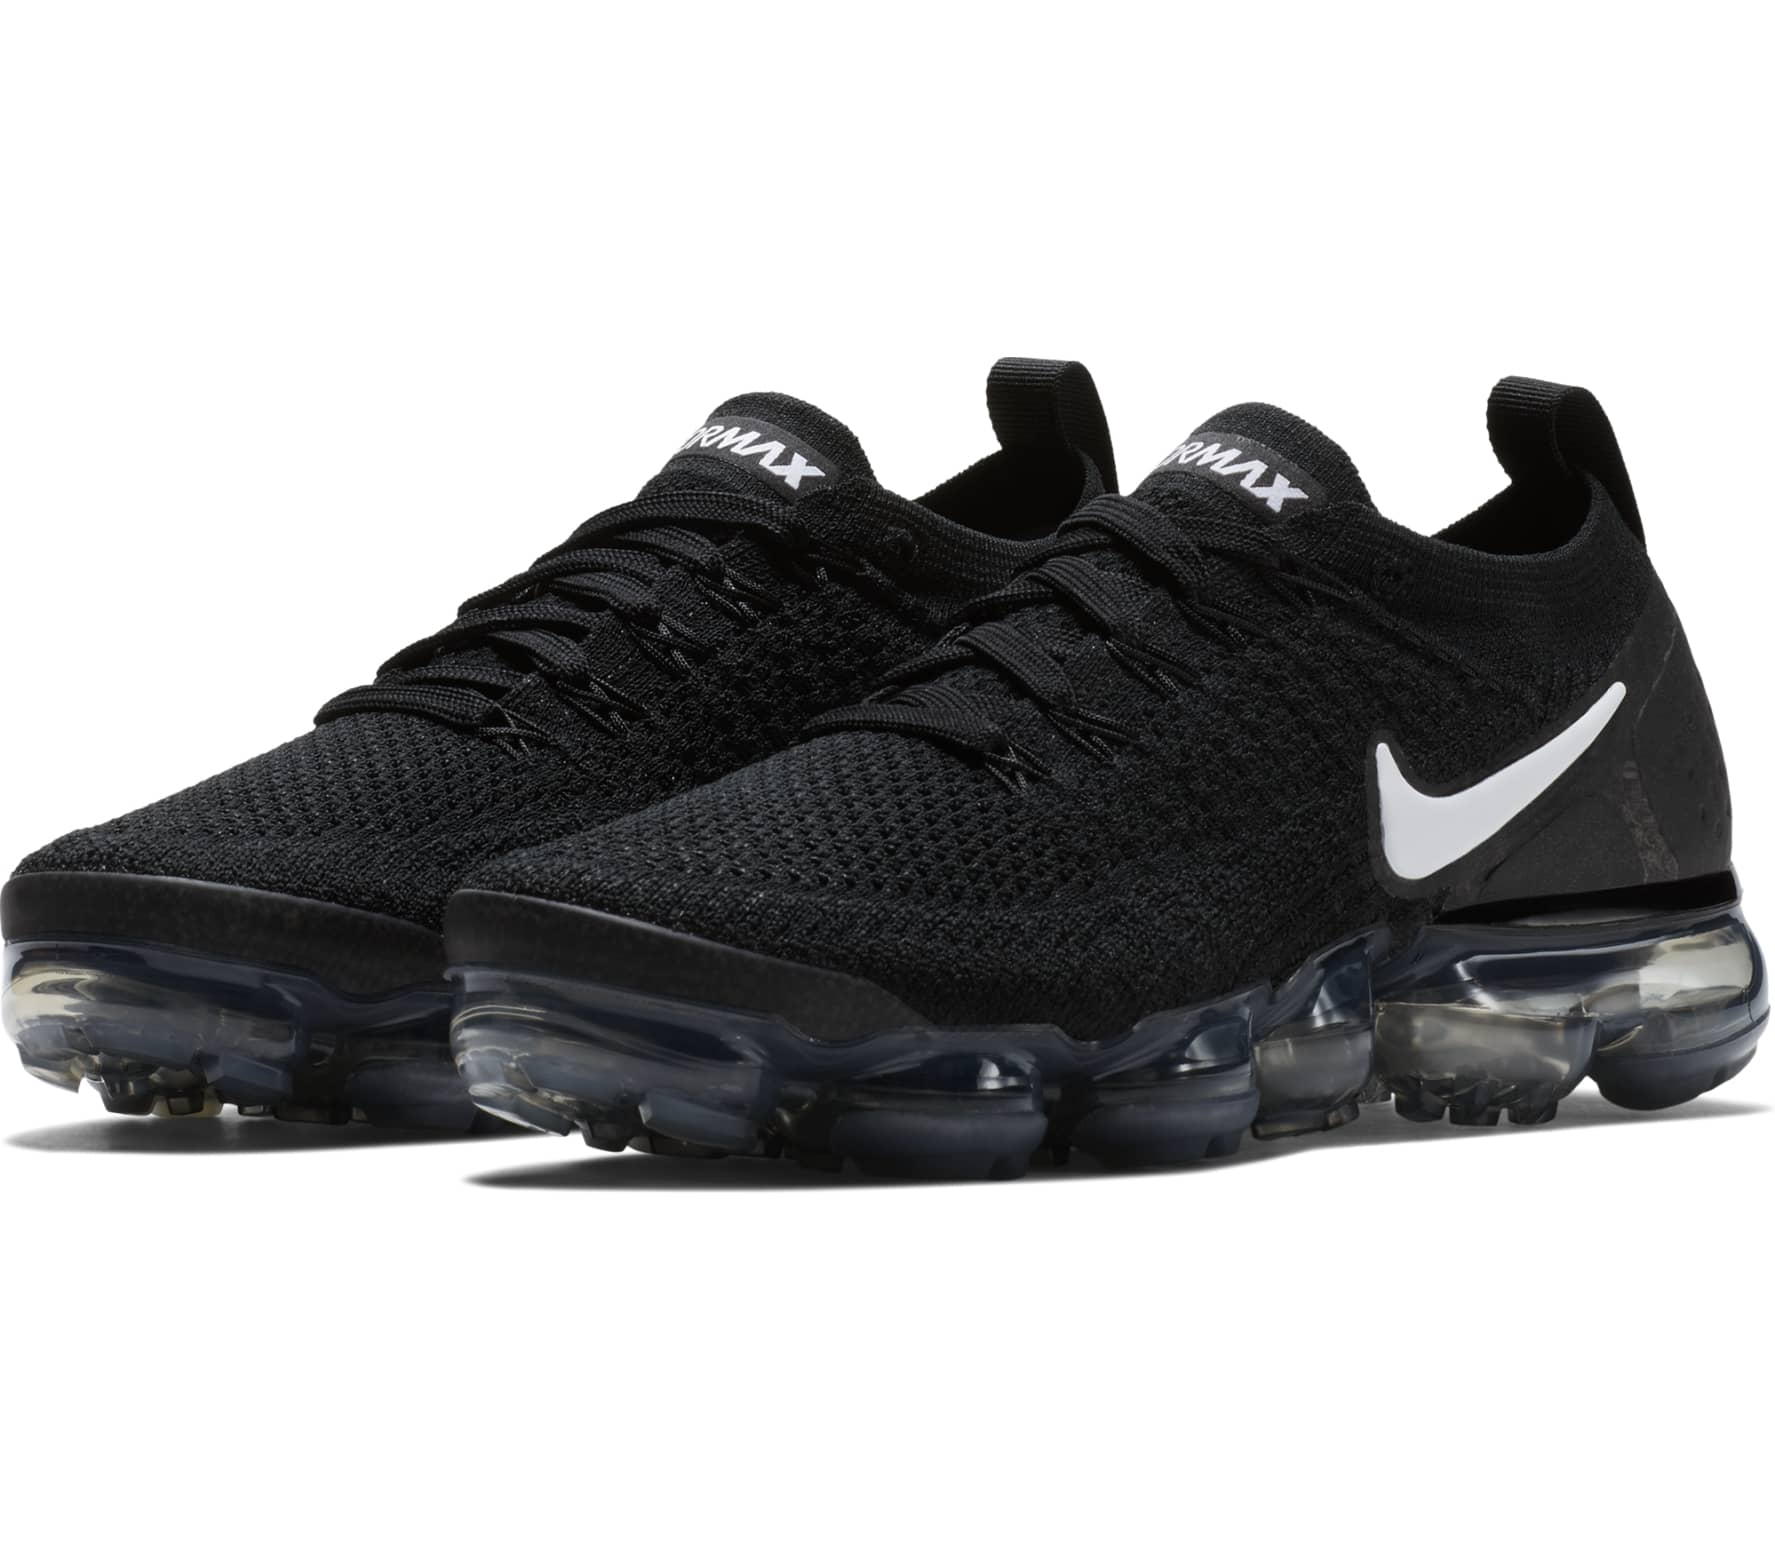 466e413894de3 Nike Air VaporMax Flyknit 2 Women black